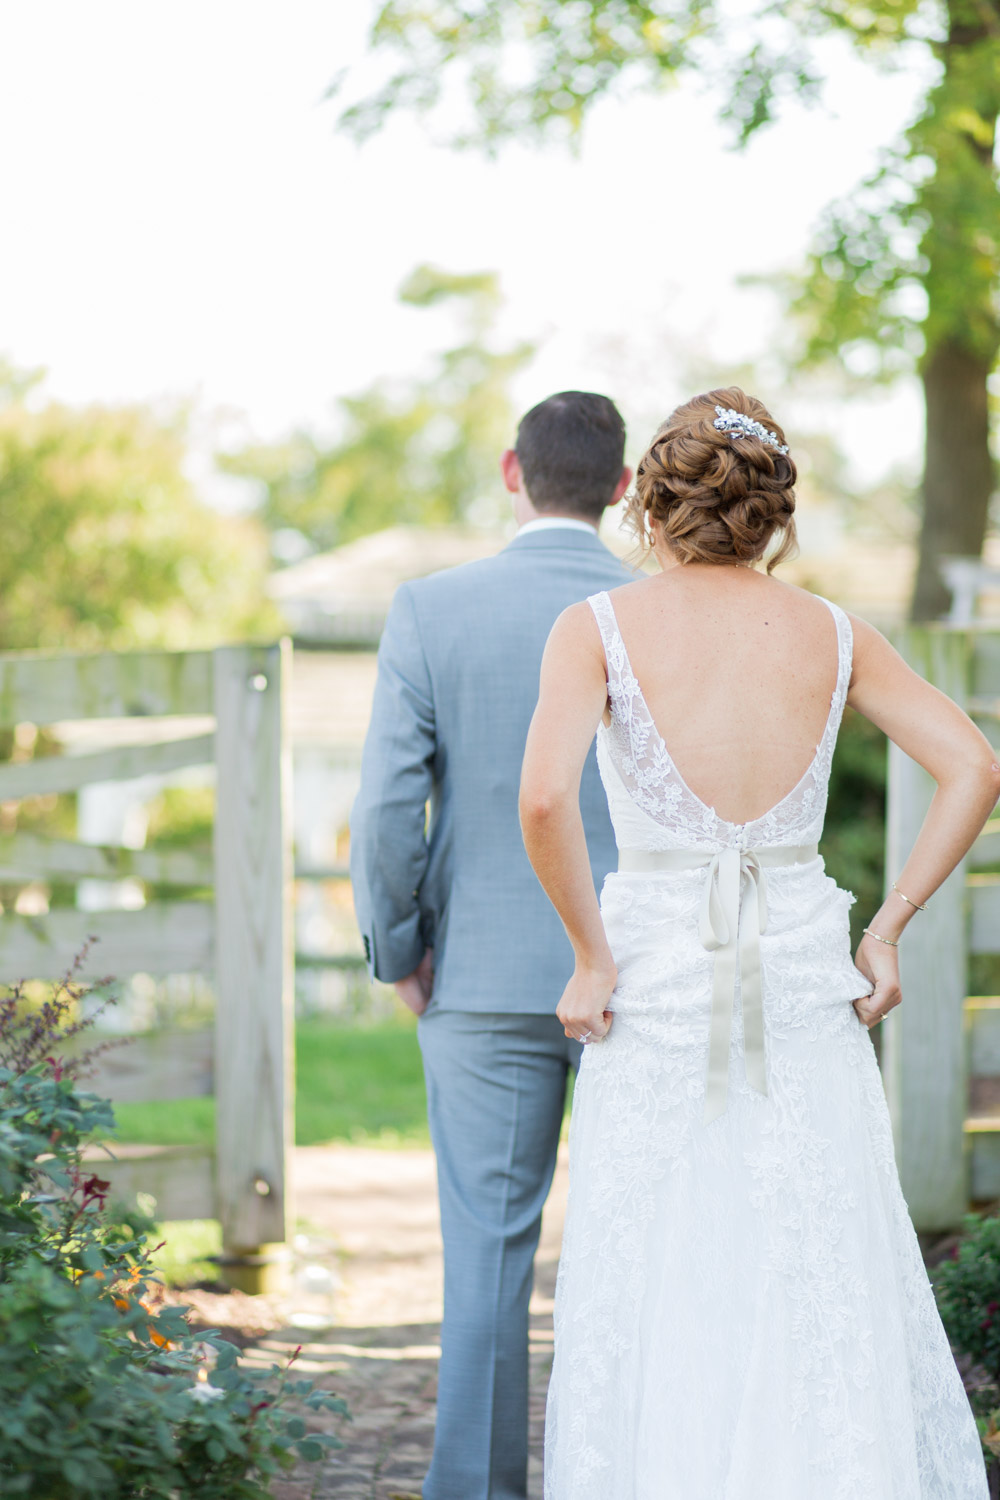 First look at Walker's Overlook in Maryland, Adorable moment before the groom sees the bride for the 1st time, Cavin Elizabeth Photography